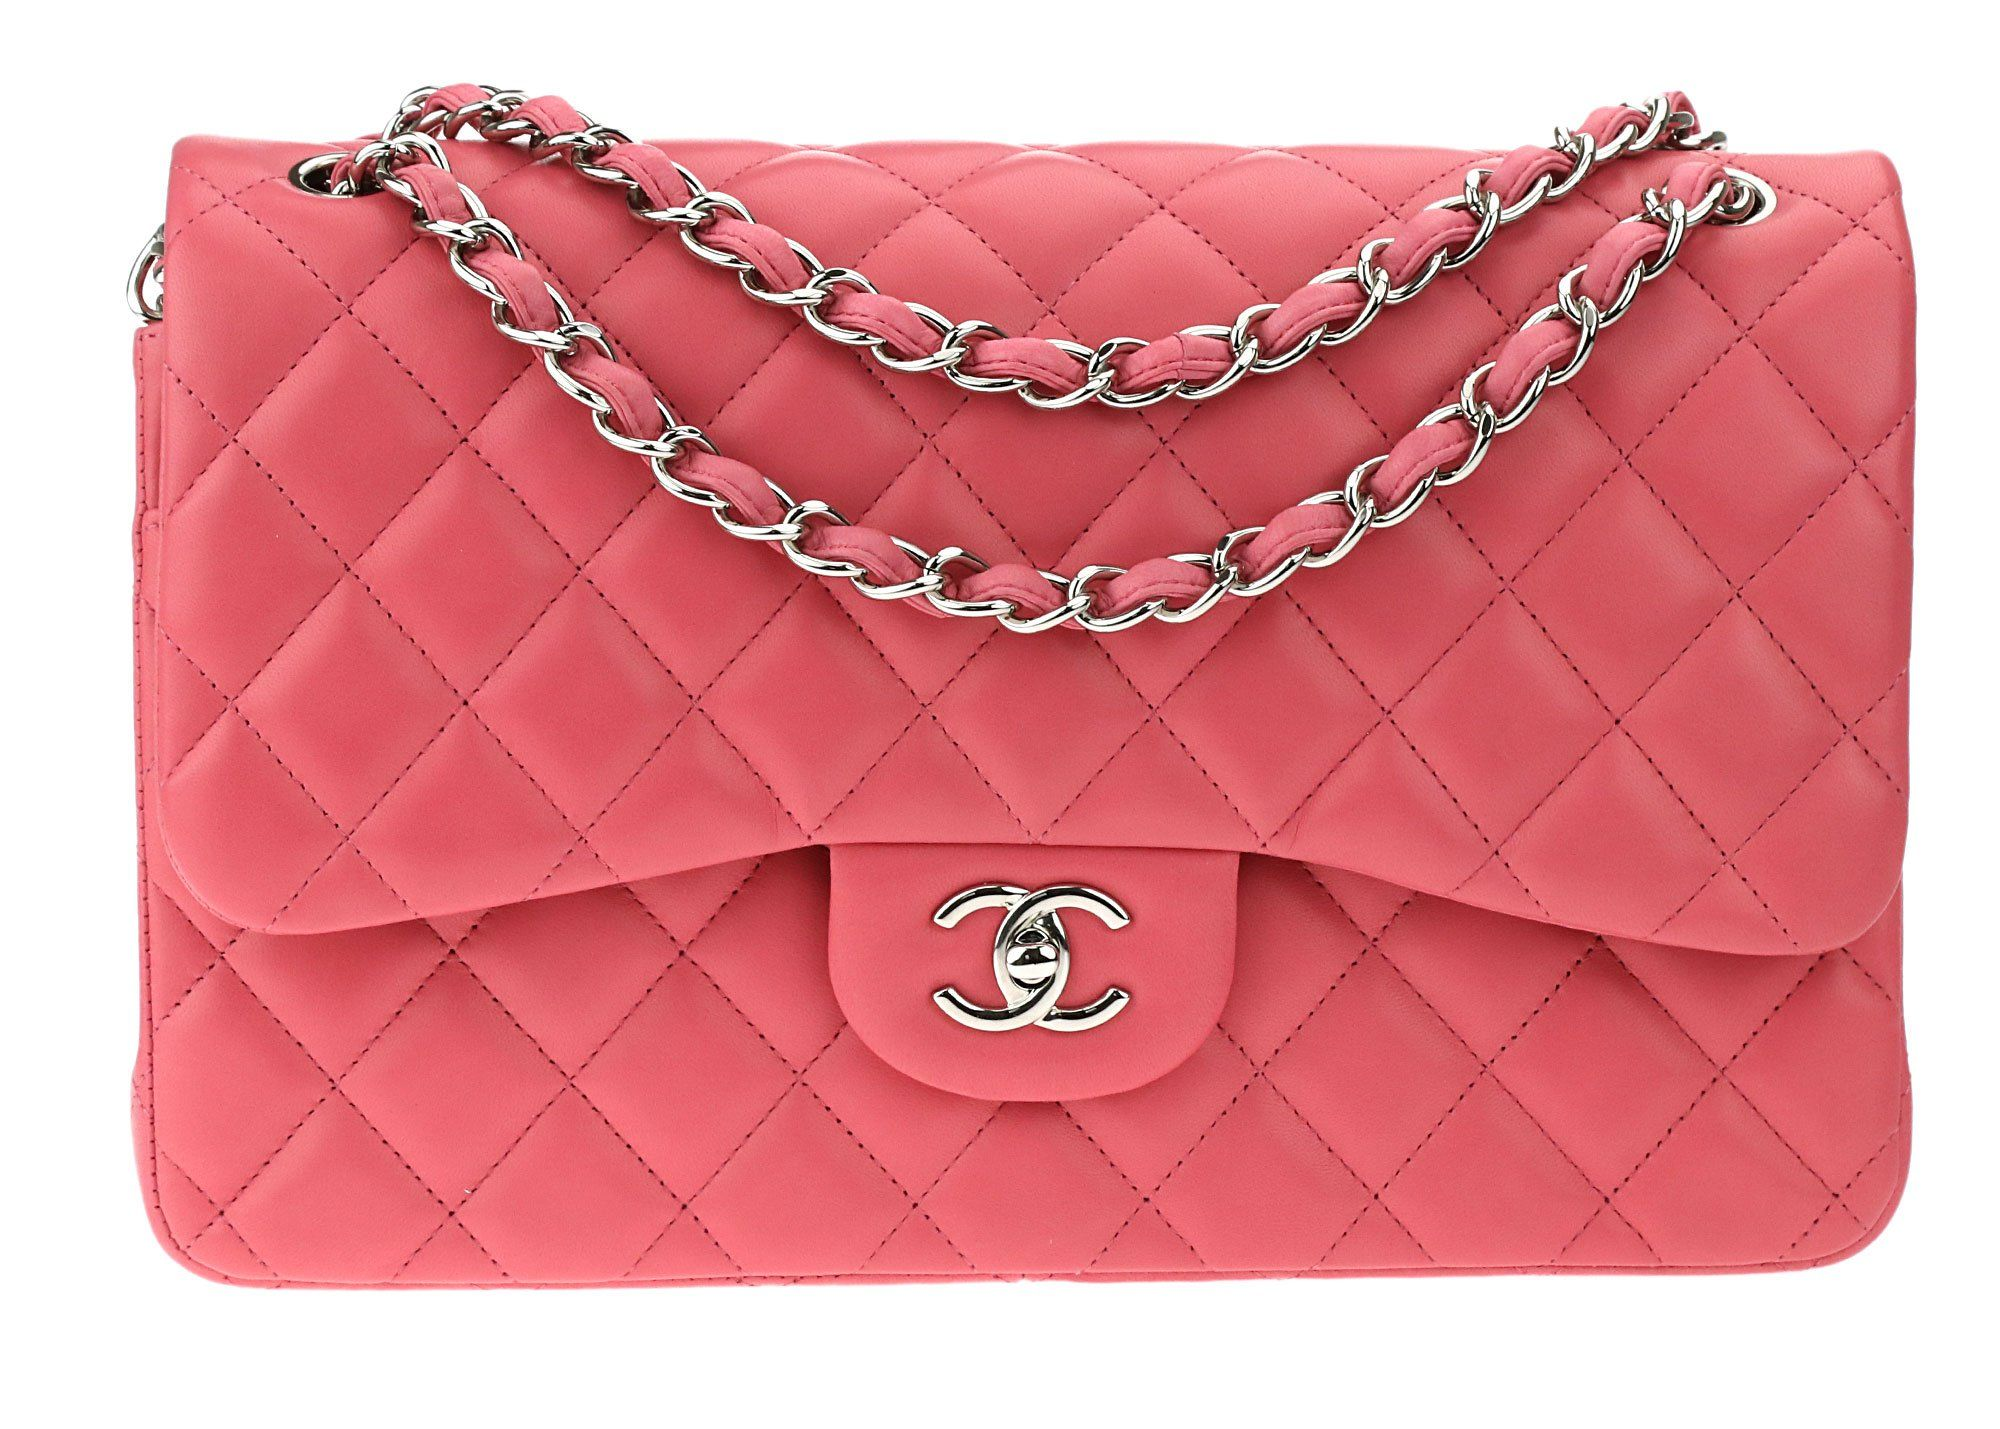 9a2551b4f1d7 Chanel Classic Pink Lambskin Leather Jumbo Double Flap Bag | CHANEL ...